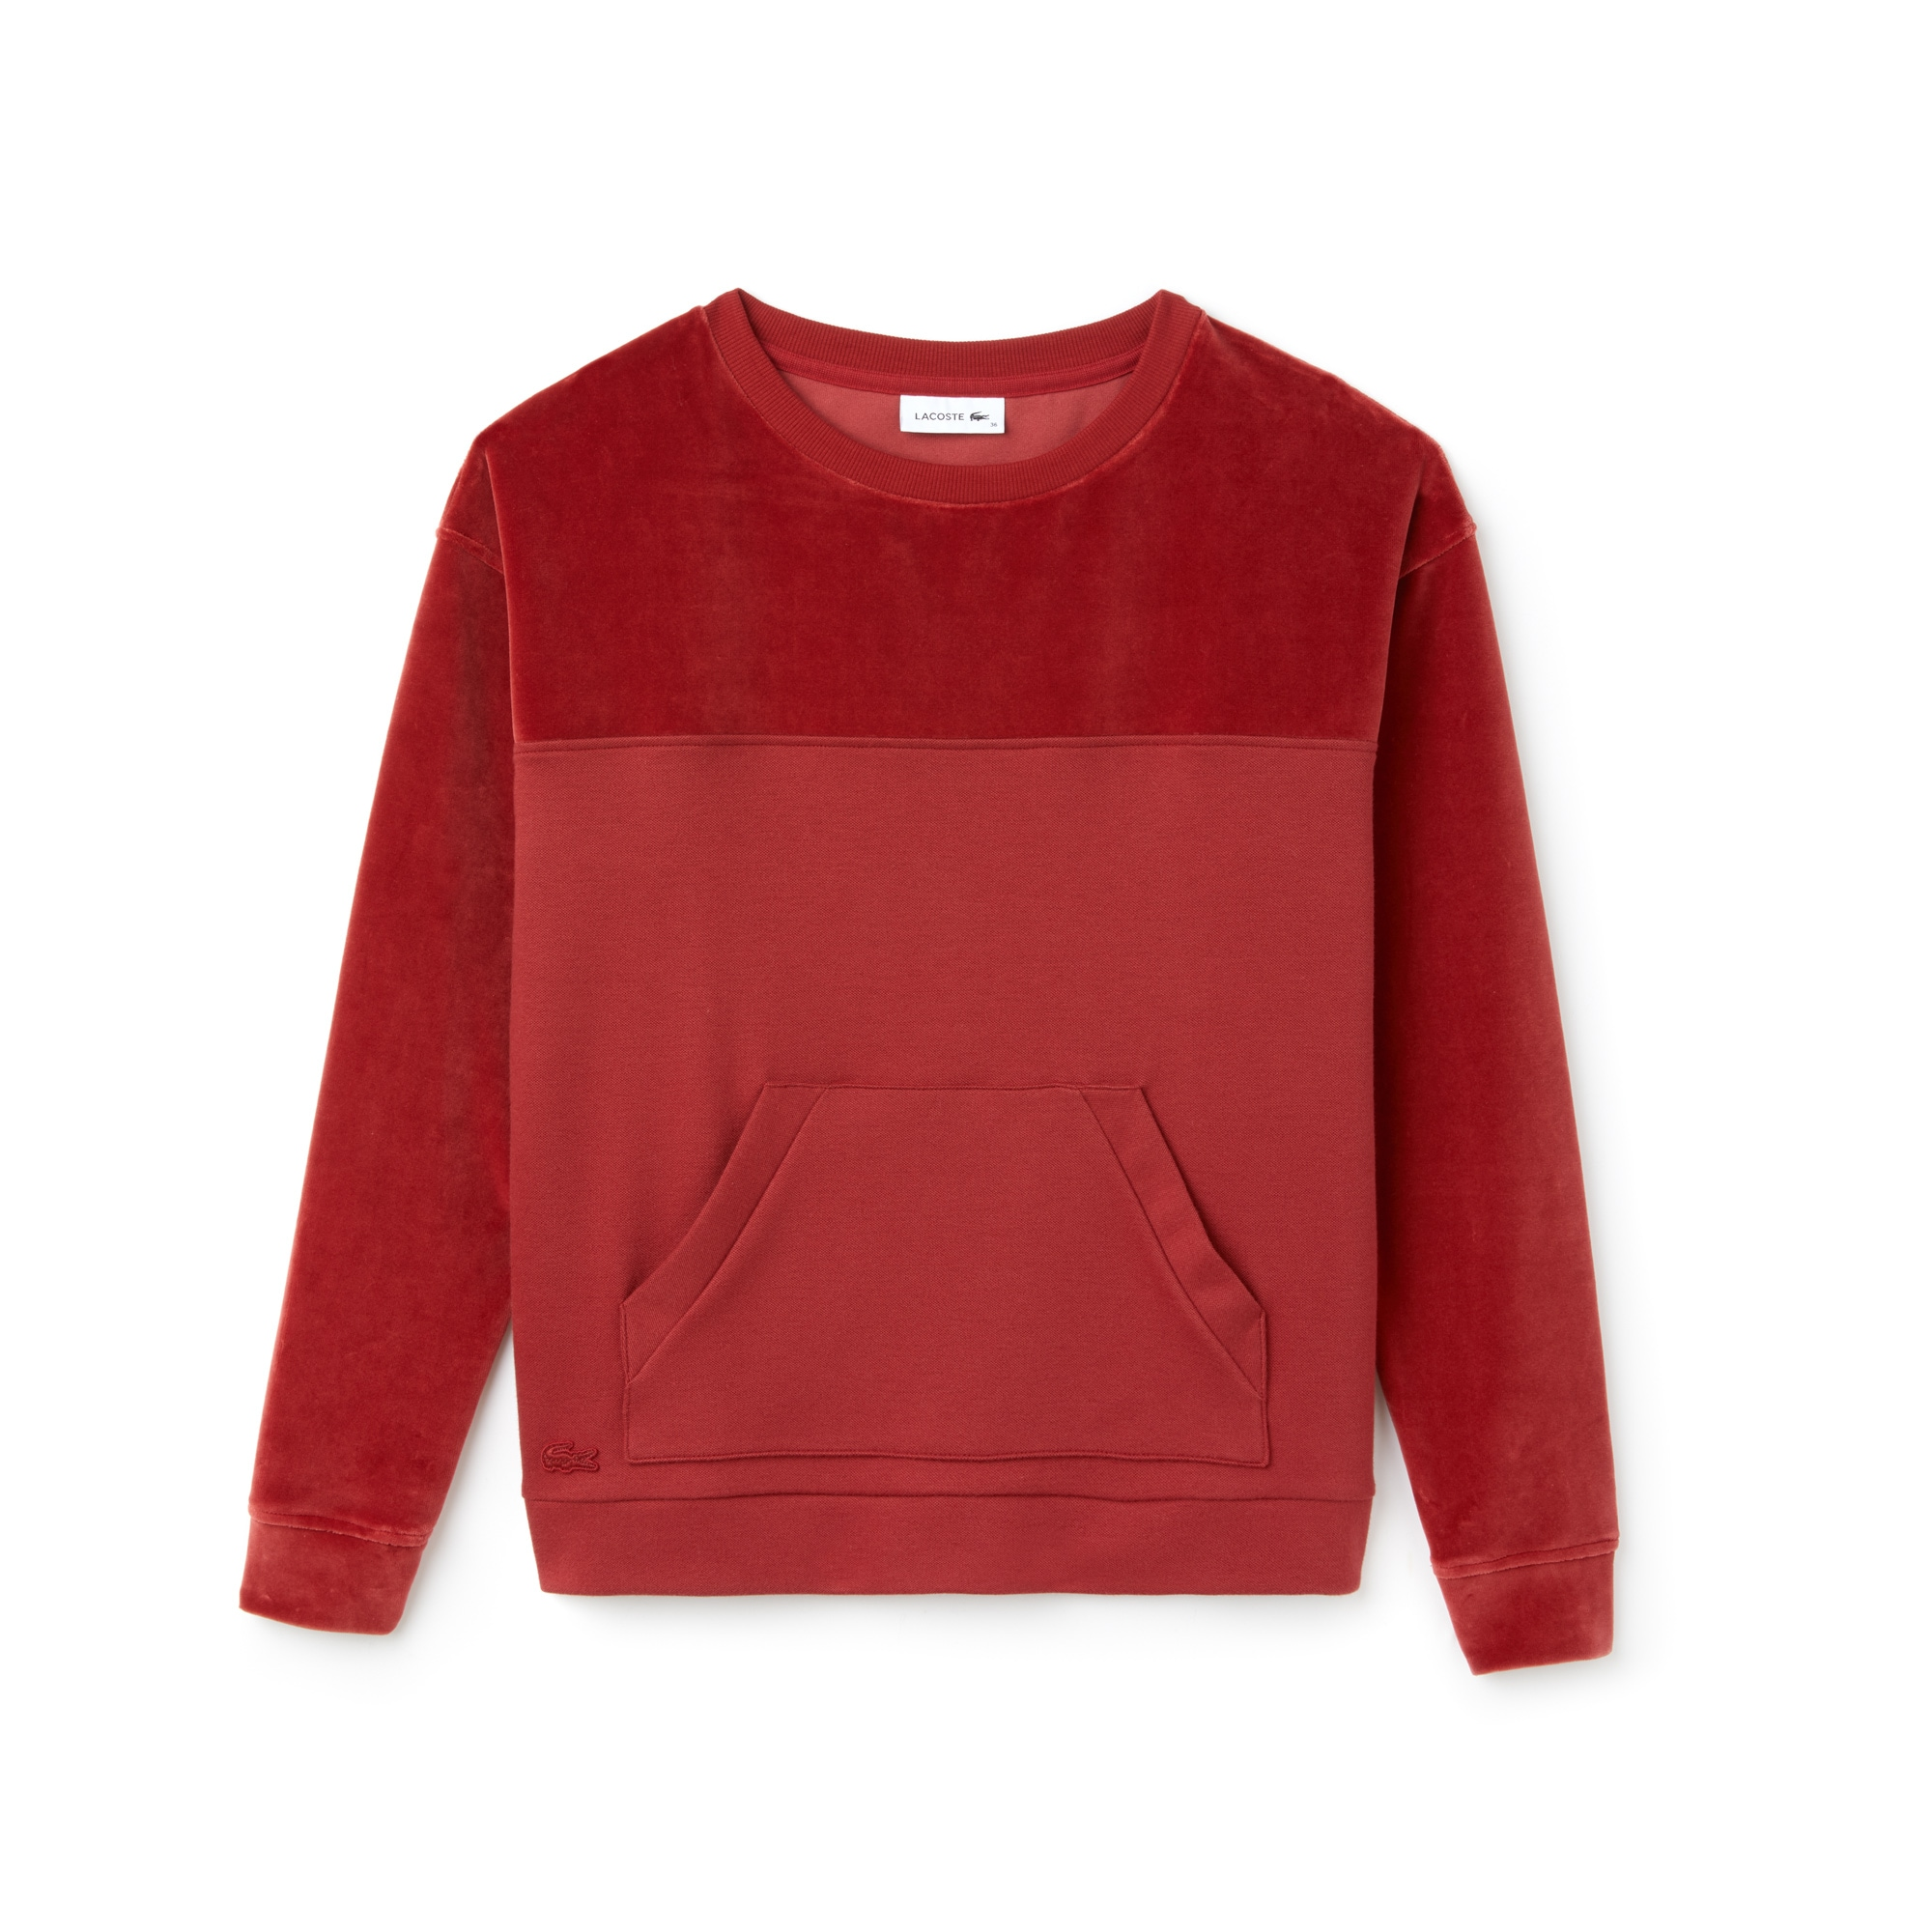 Women's Crew Neck And Velour Sweatshirt